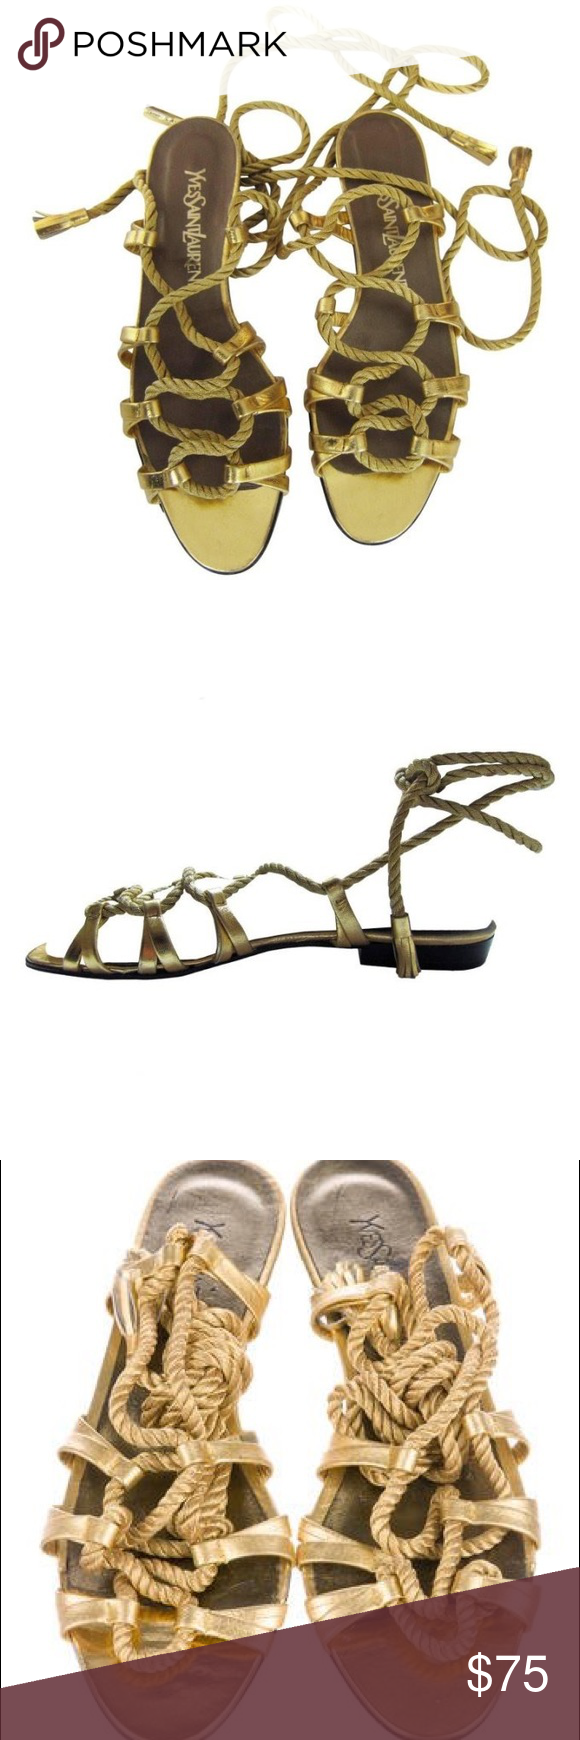 223f85db0ad Yves Saint Laurent Golden Rope Tassel Sandal 1970s These are Gorgeous golden  leather and rope gladiator